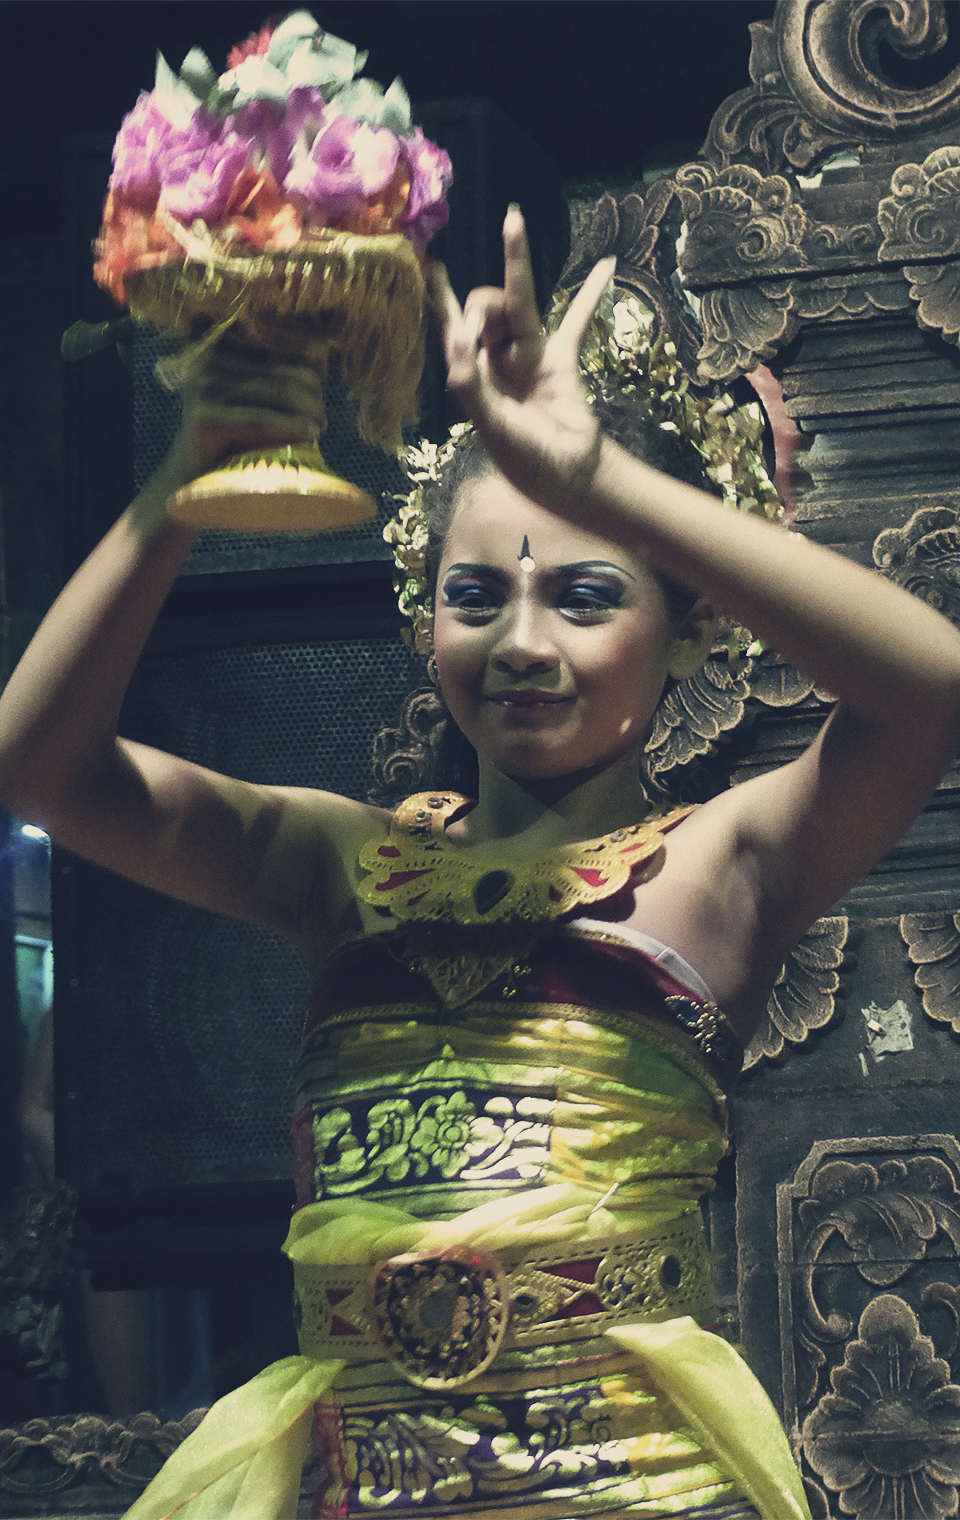 Bali-photo-people-4